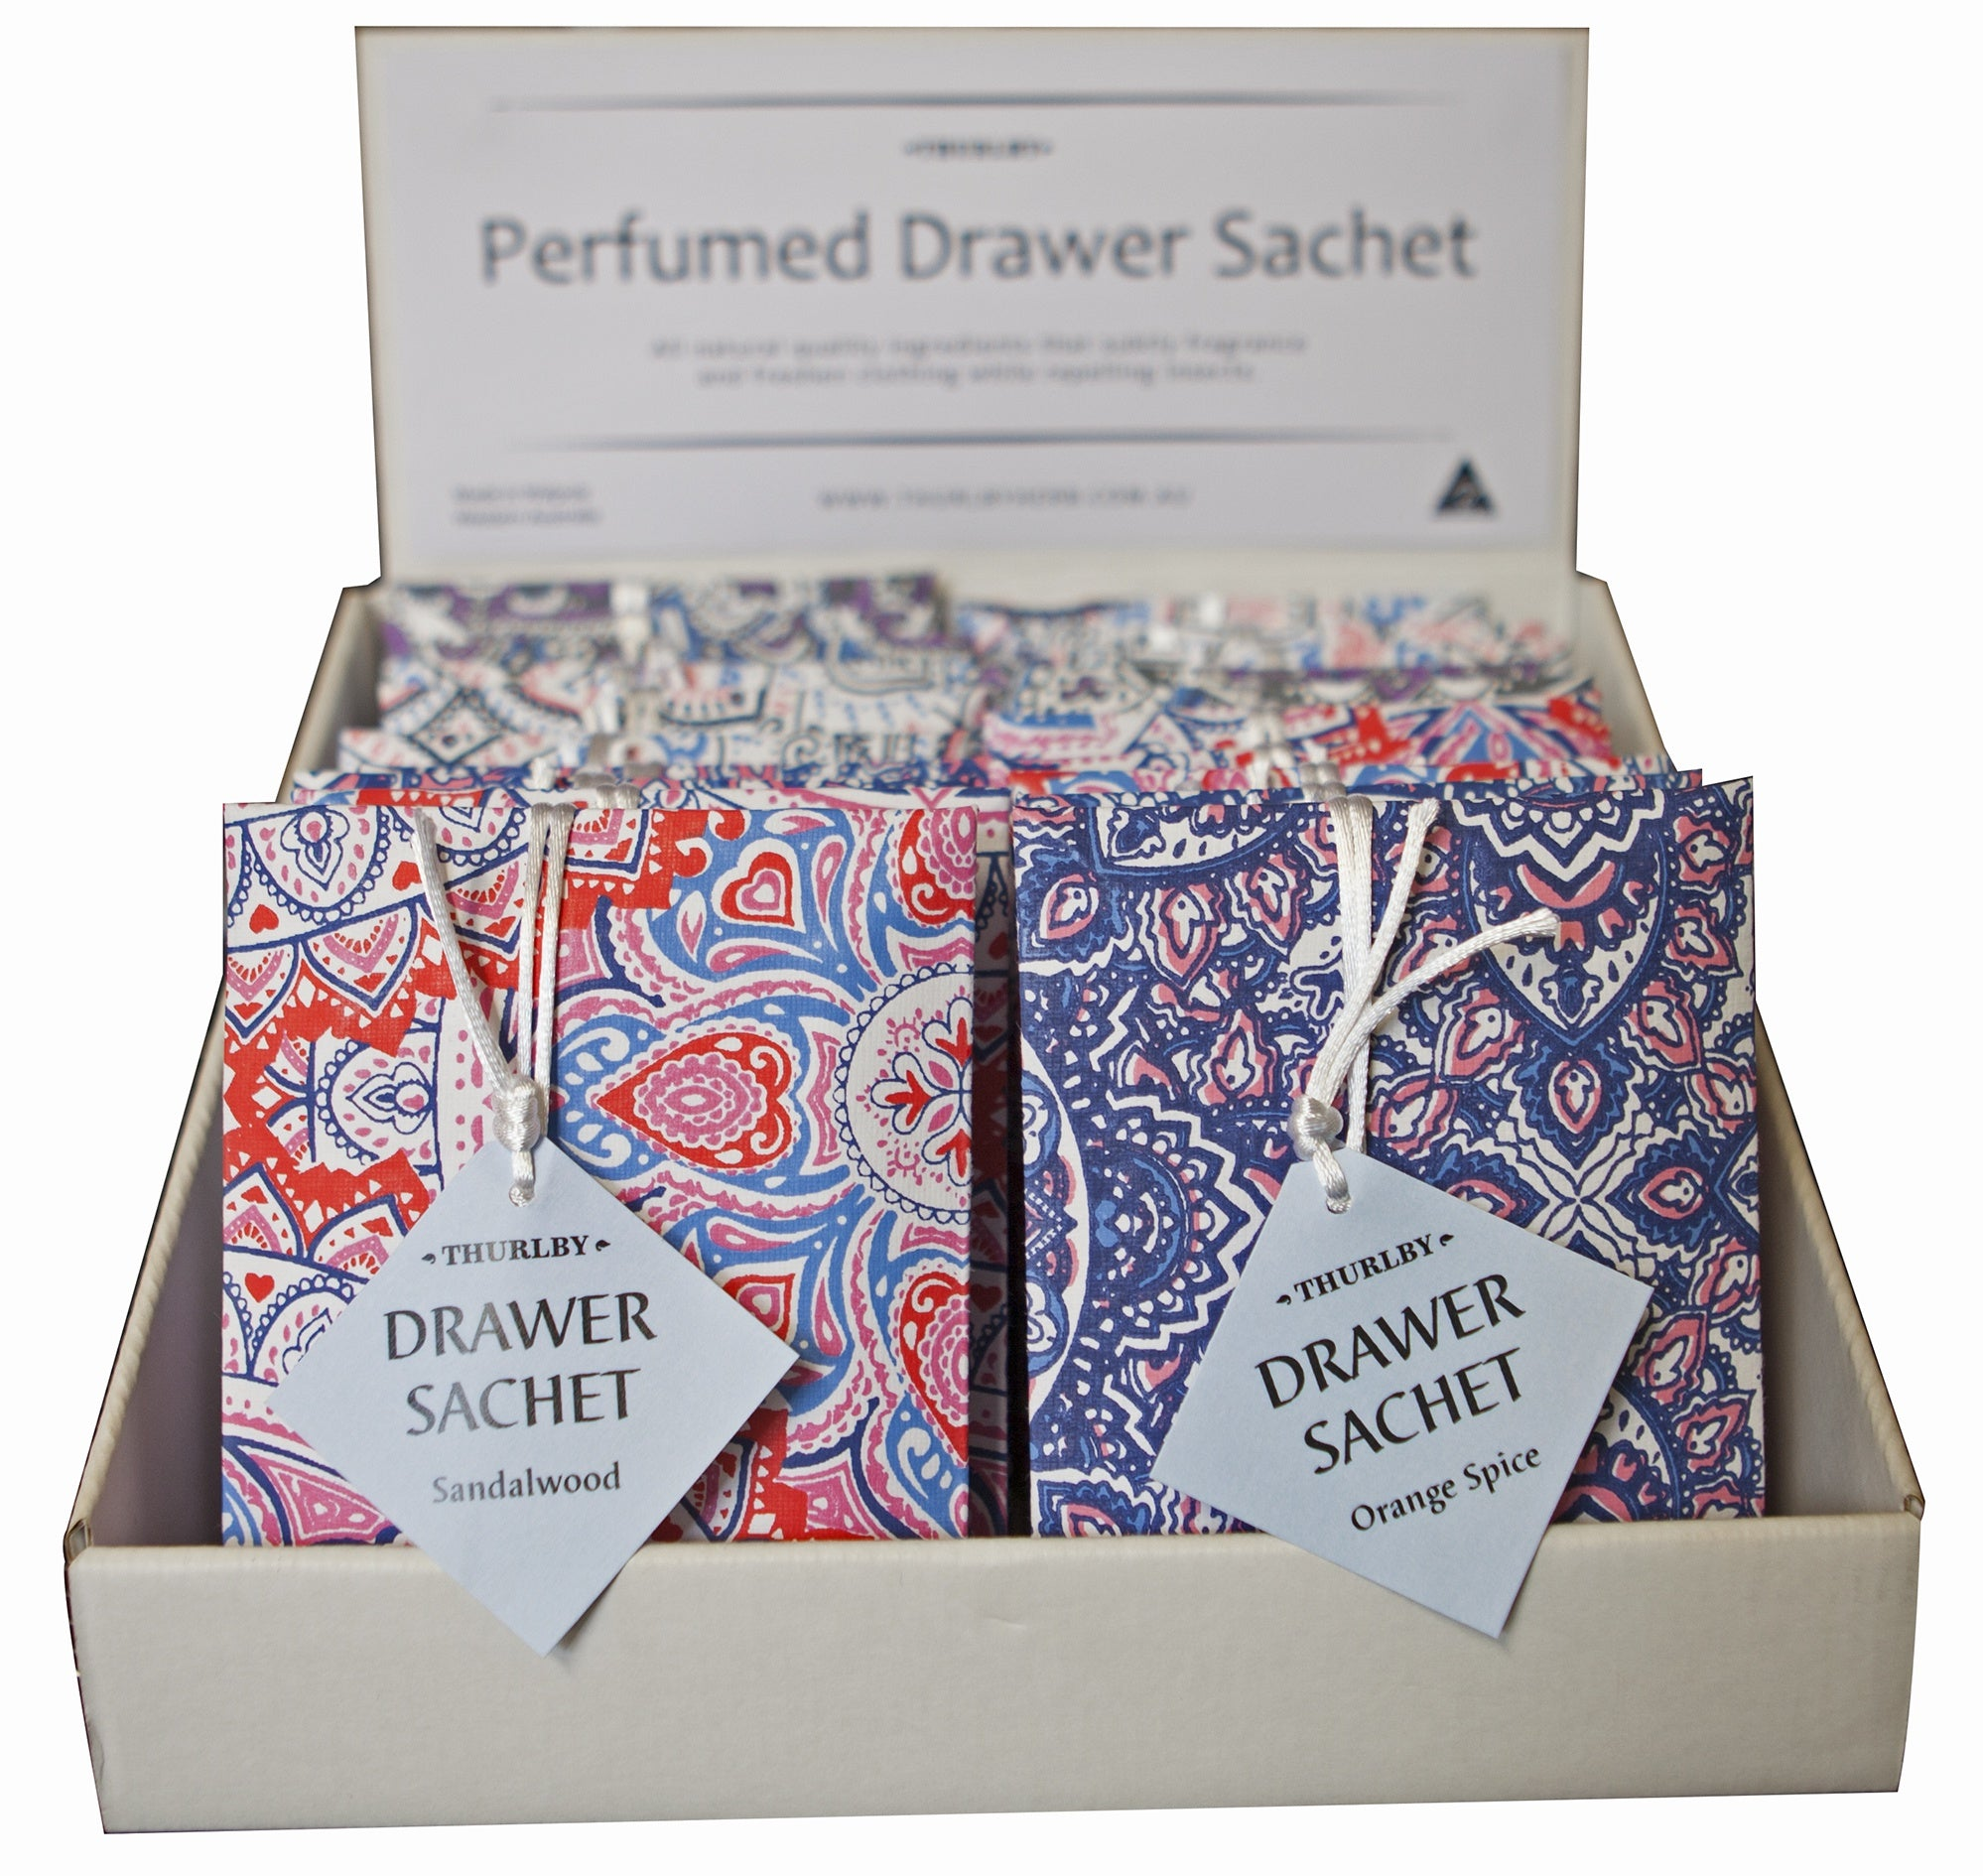 Prickly Drawer Sachet Sandalwood